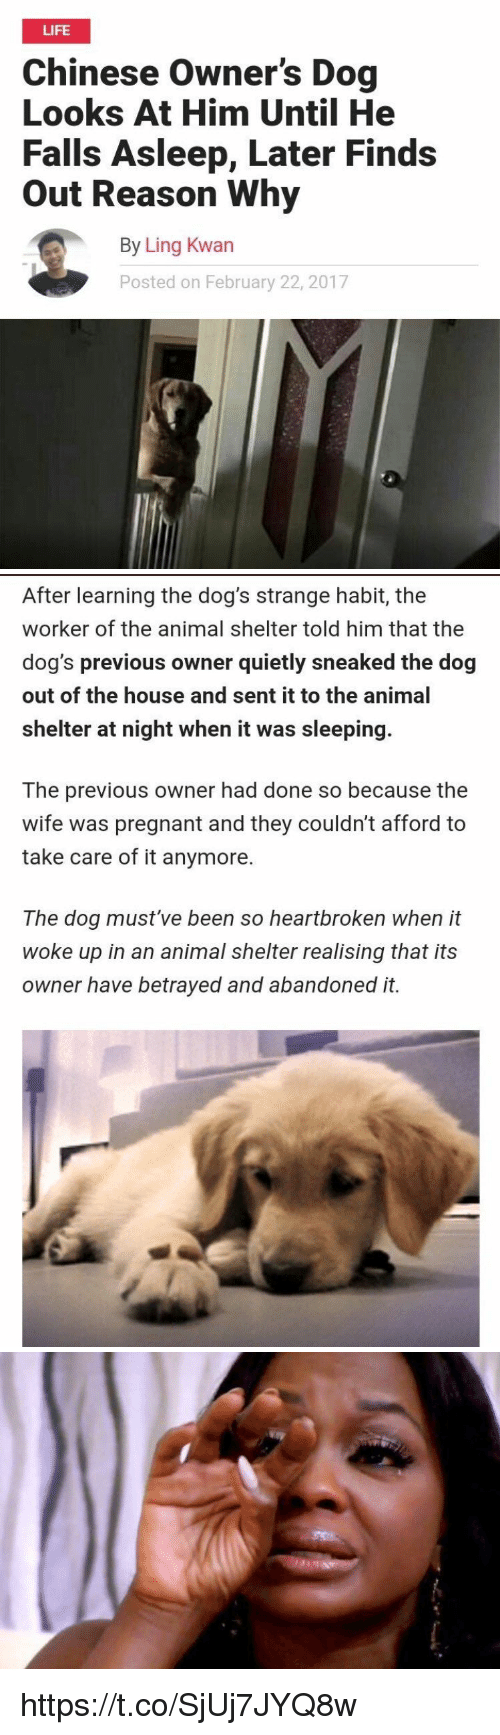 Dogs, Life, and Pregnant: LIFE  Chinese Owner's Dog  Looks At Him Until He  Falls Asleep, Later Finds  Out Reason Why  By Ling Kwan  Posted on February 22, 2017   After learning the dog's strange habit, the  worker of the animal shelter told him that the  dog's previous owner quietly sneaked the dog  out of the house and sent it to the animal  shelter at night when it was sleeping.  The previous owner had done so because the  wife was pregnant and they couldn't afford to  take care of it anymore.  The dog must've been so heartbroken when it  woke up in an animal shelter realising that its  owner have betrayed and abandoned it. https://t.co/SjUj7JYQ8w